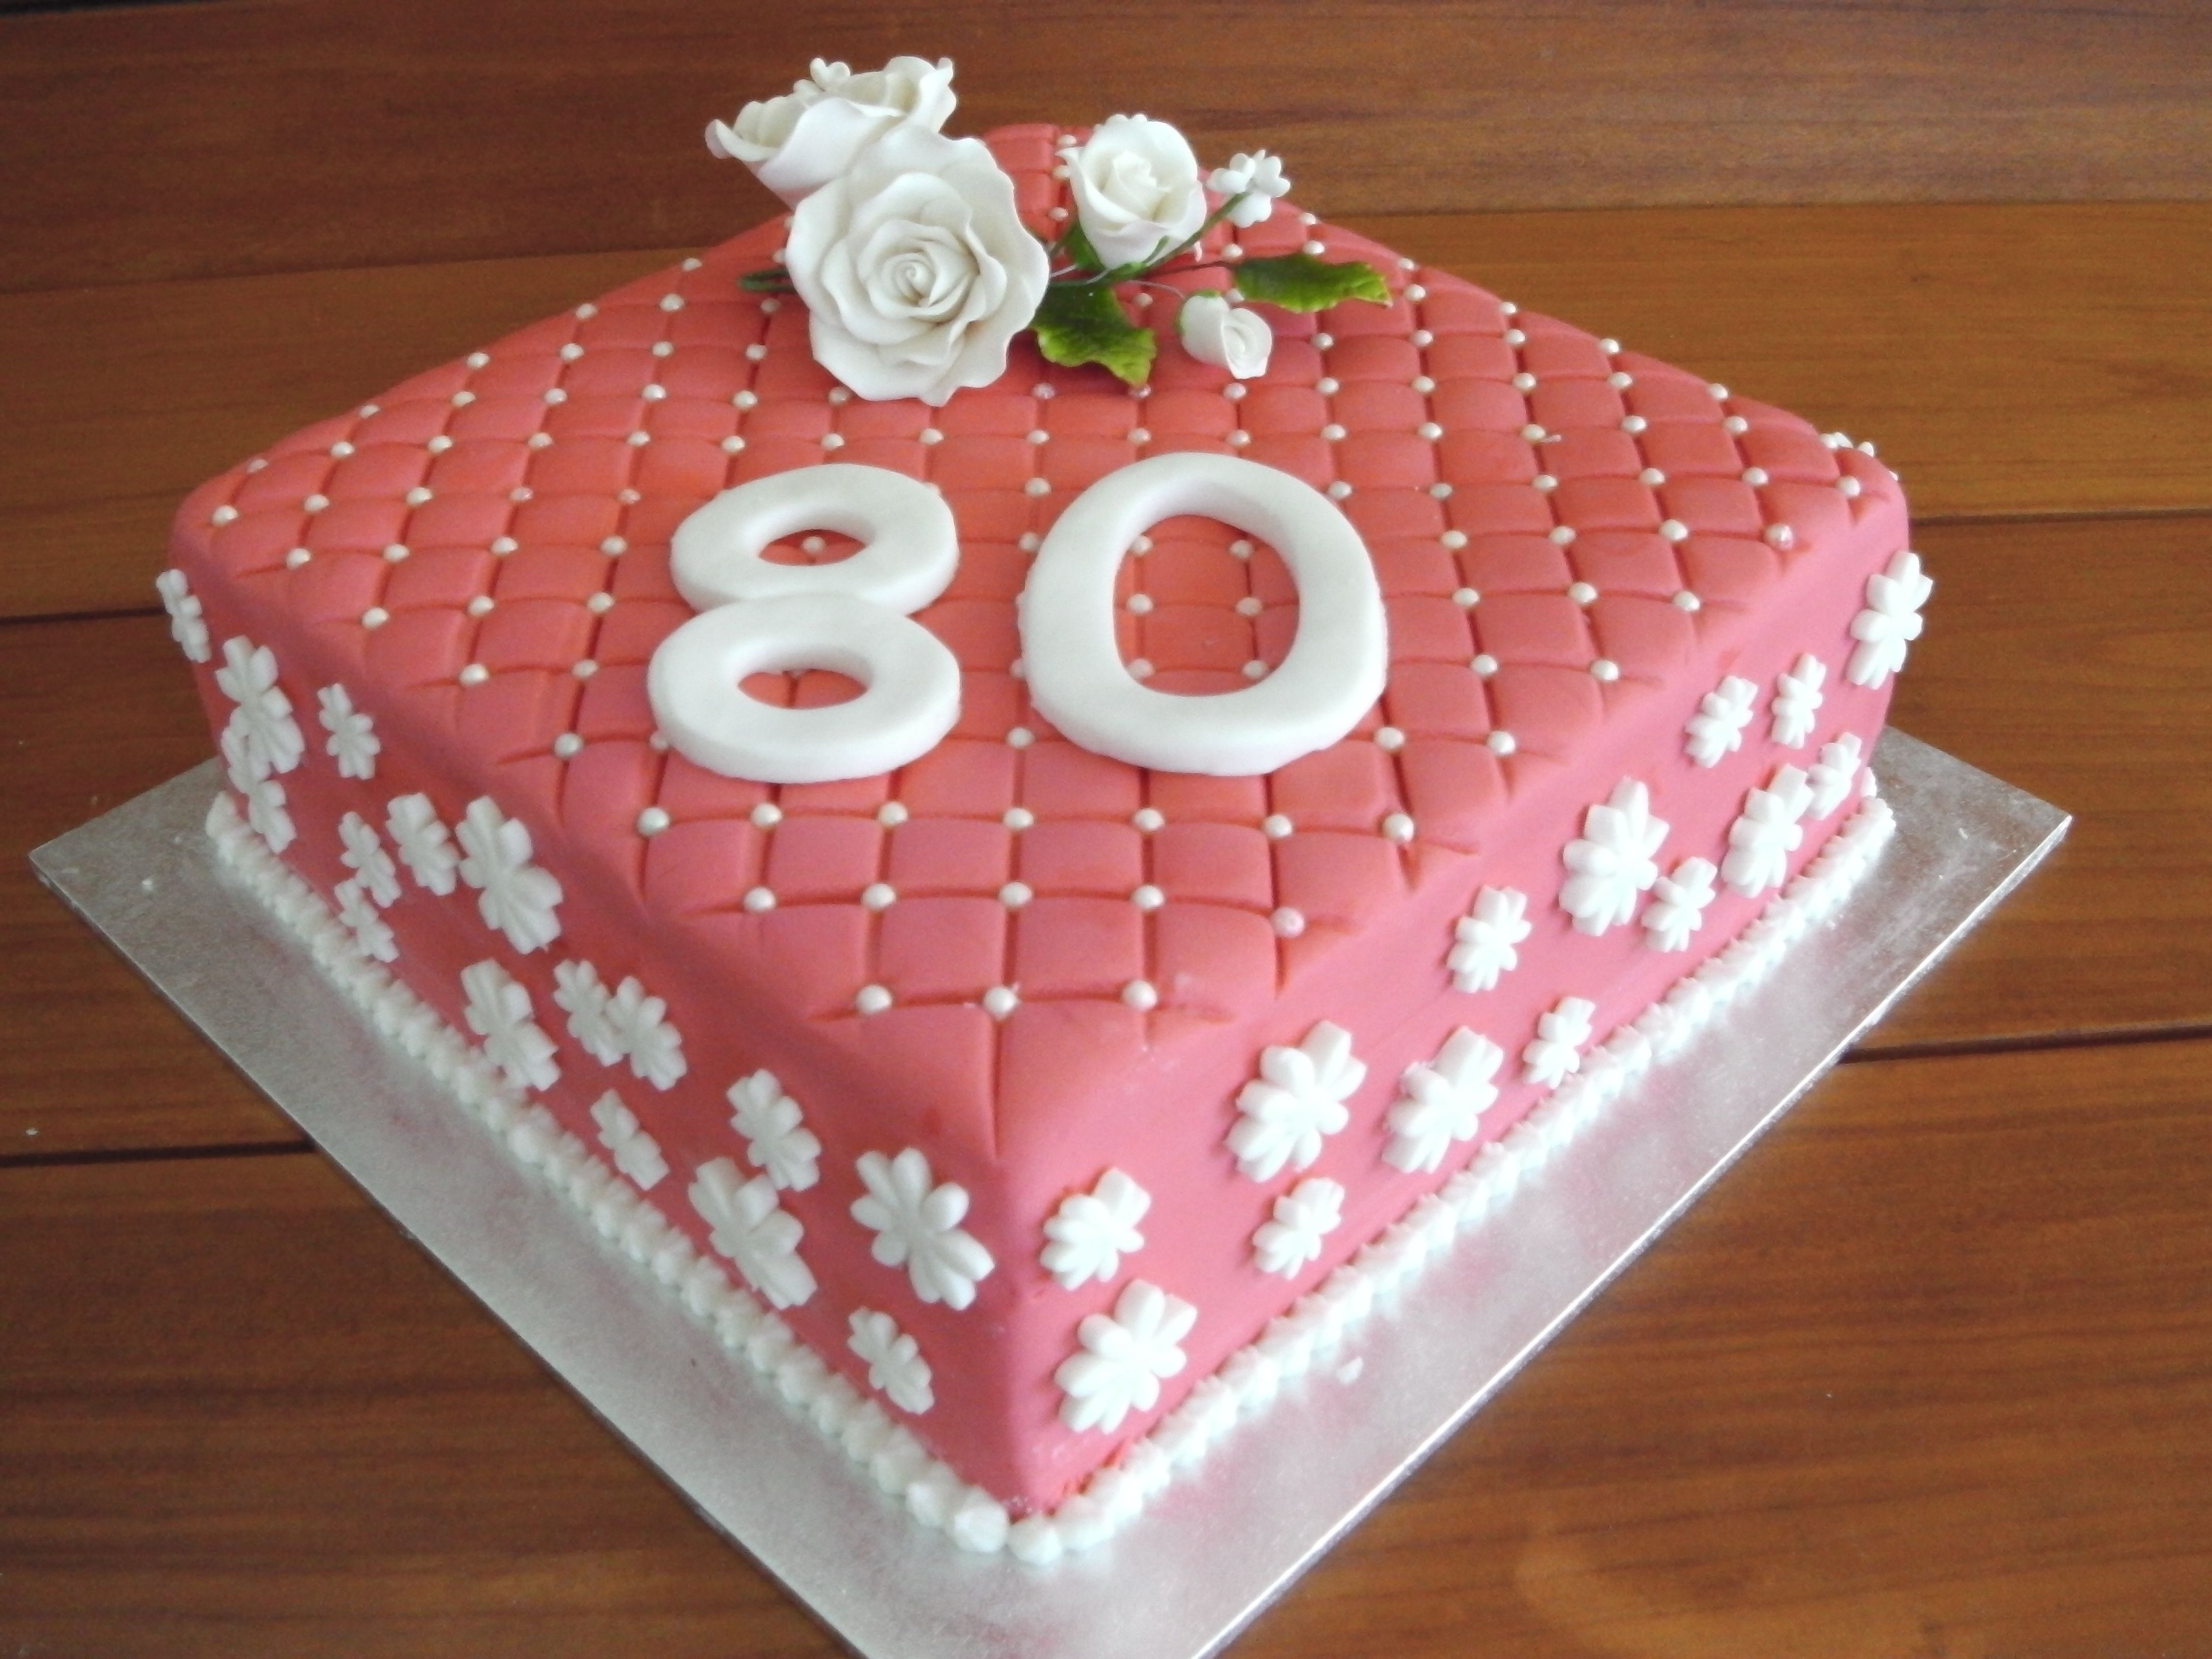 Happy 80th Birthday Mary Traditional Rich Fruit Cake Bakin Me